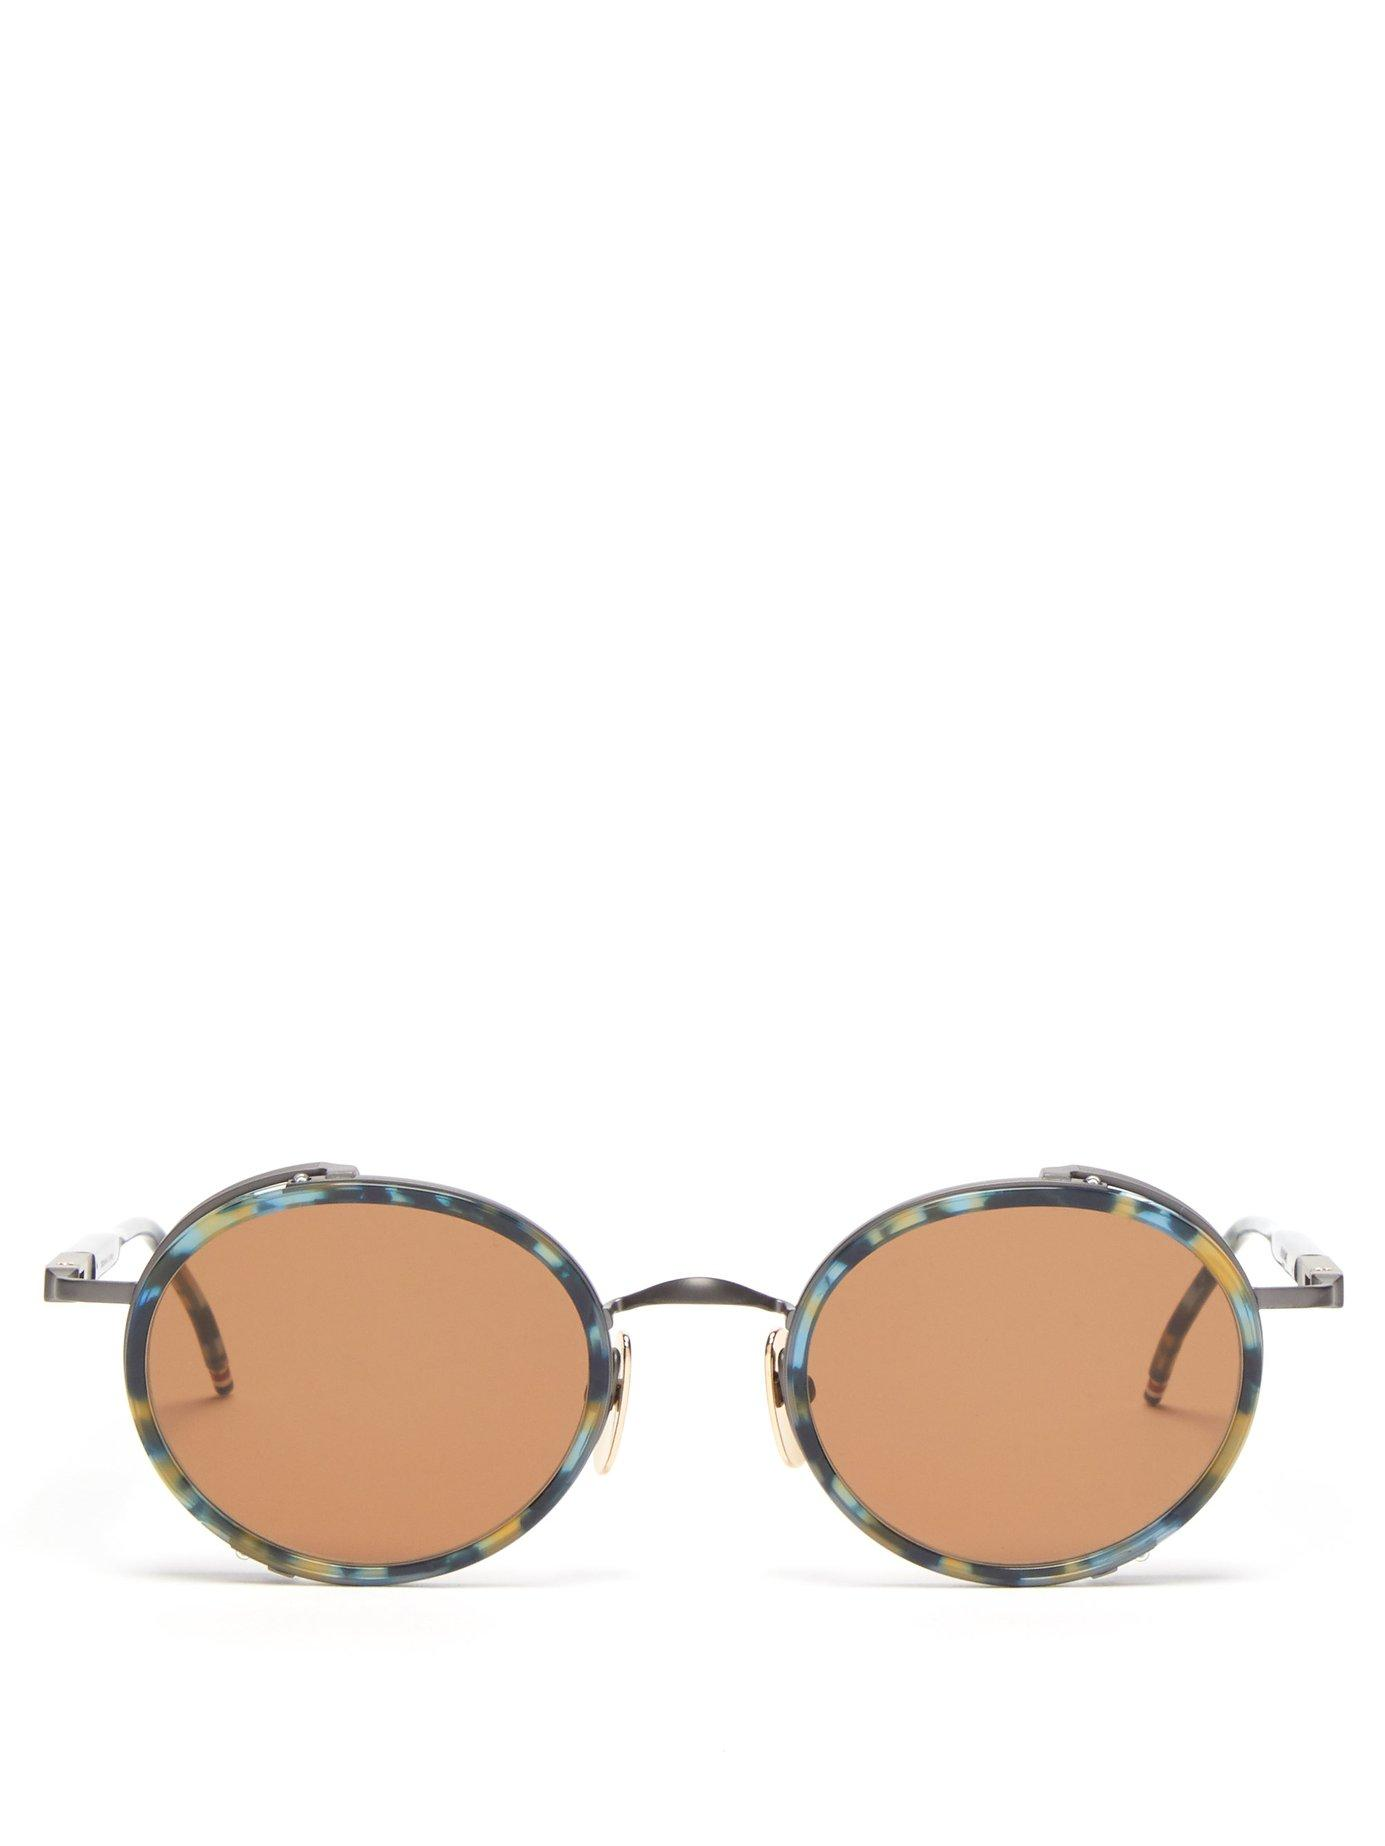 8c7ac01f30ab Lyst - Thom Browne Round Frame Acetate And Metal Sunglasses for Men